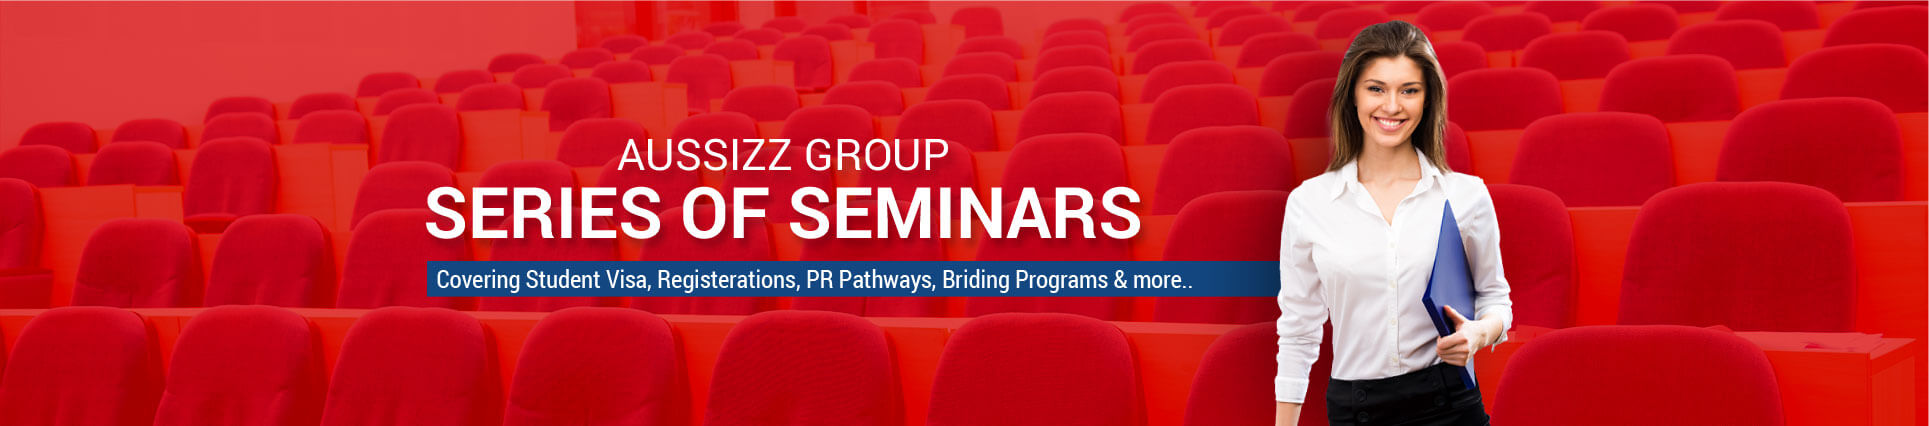 Aussizz Group - Series of Seminars